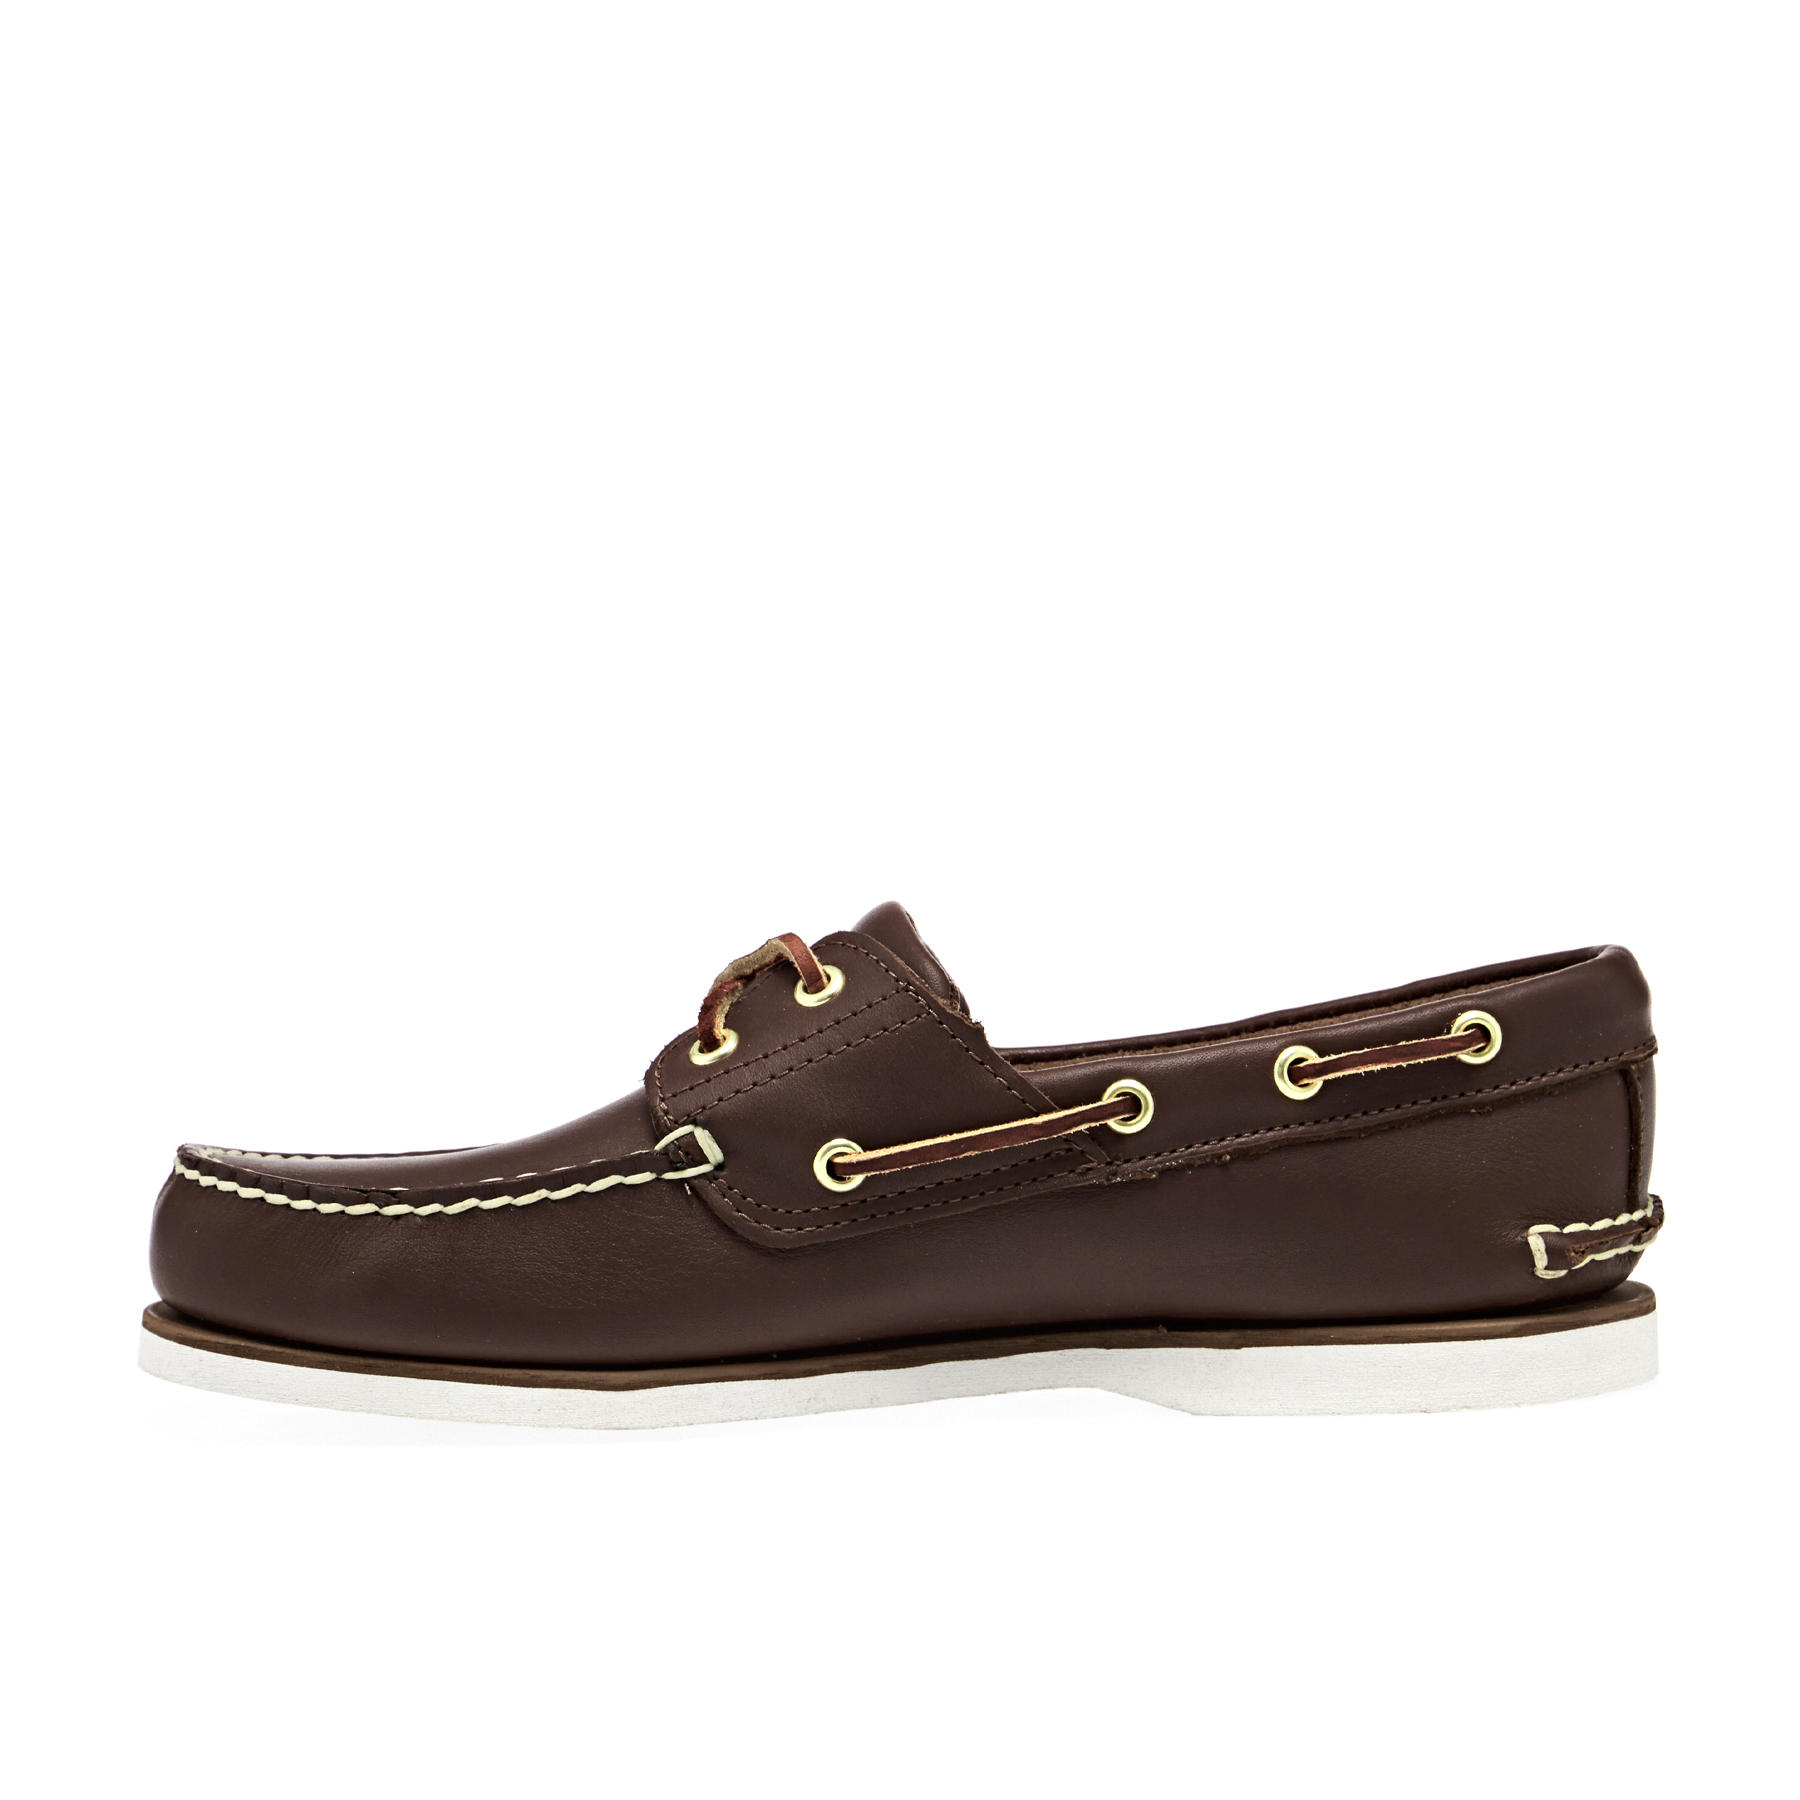 Mid Boat Shoes 2 Classic Eye Timberland Dress Full Brown 0OnwkP8